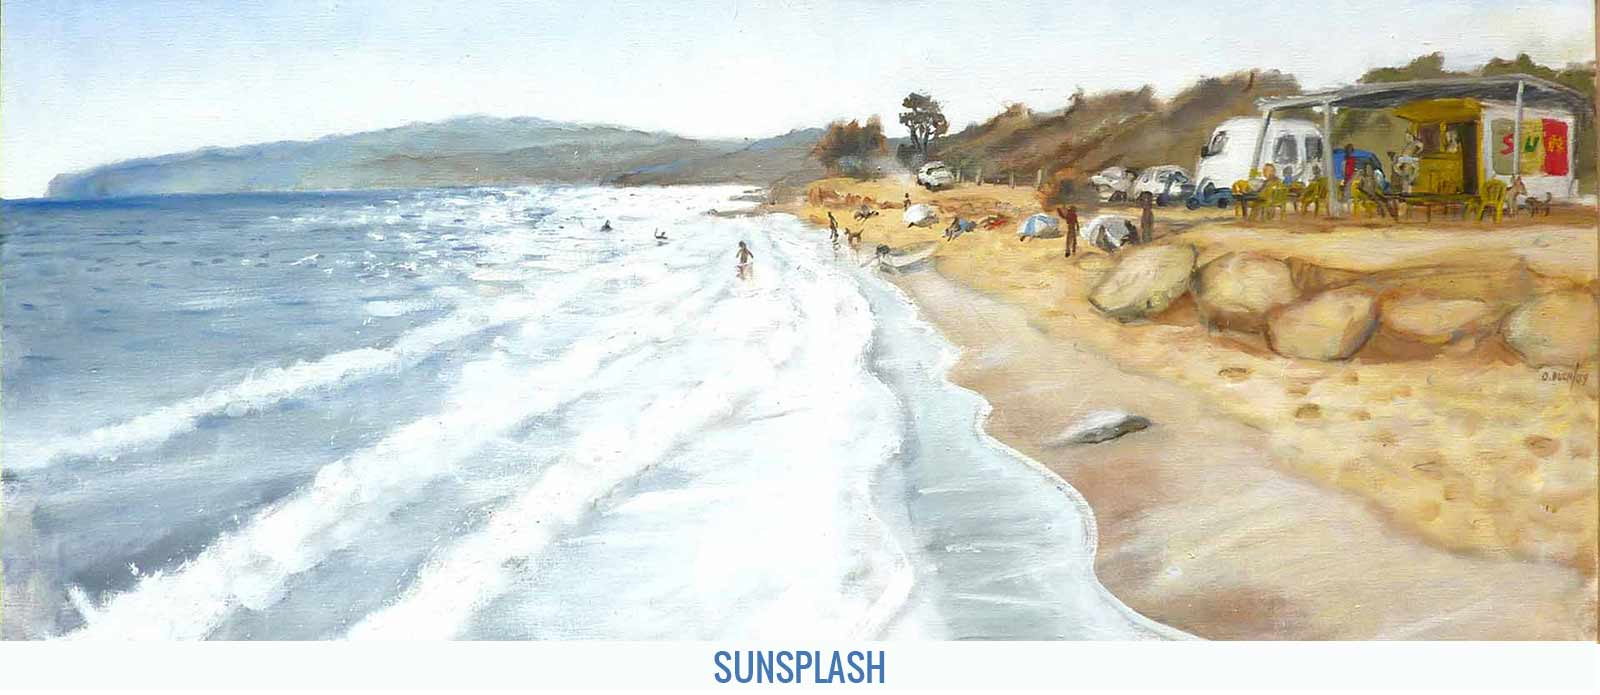 Sunsplah, Orson Buch's oil on canvas